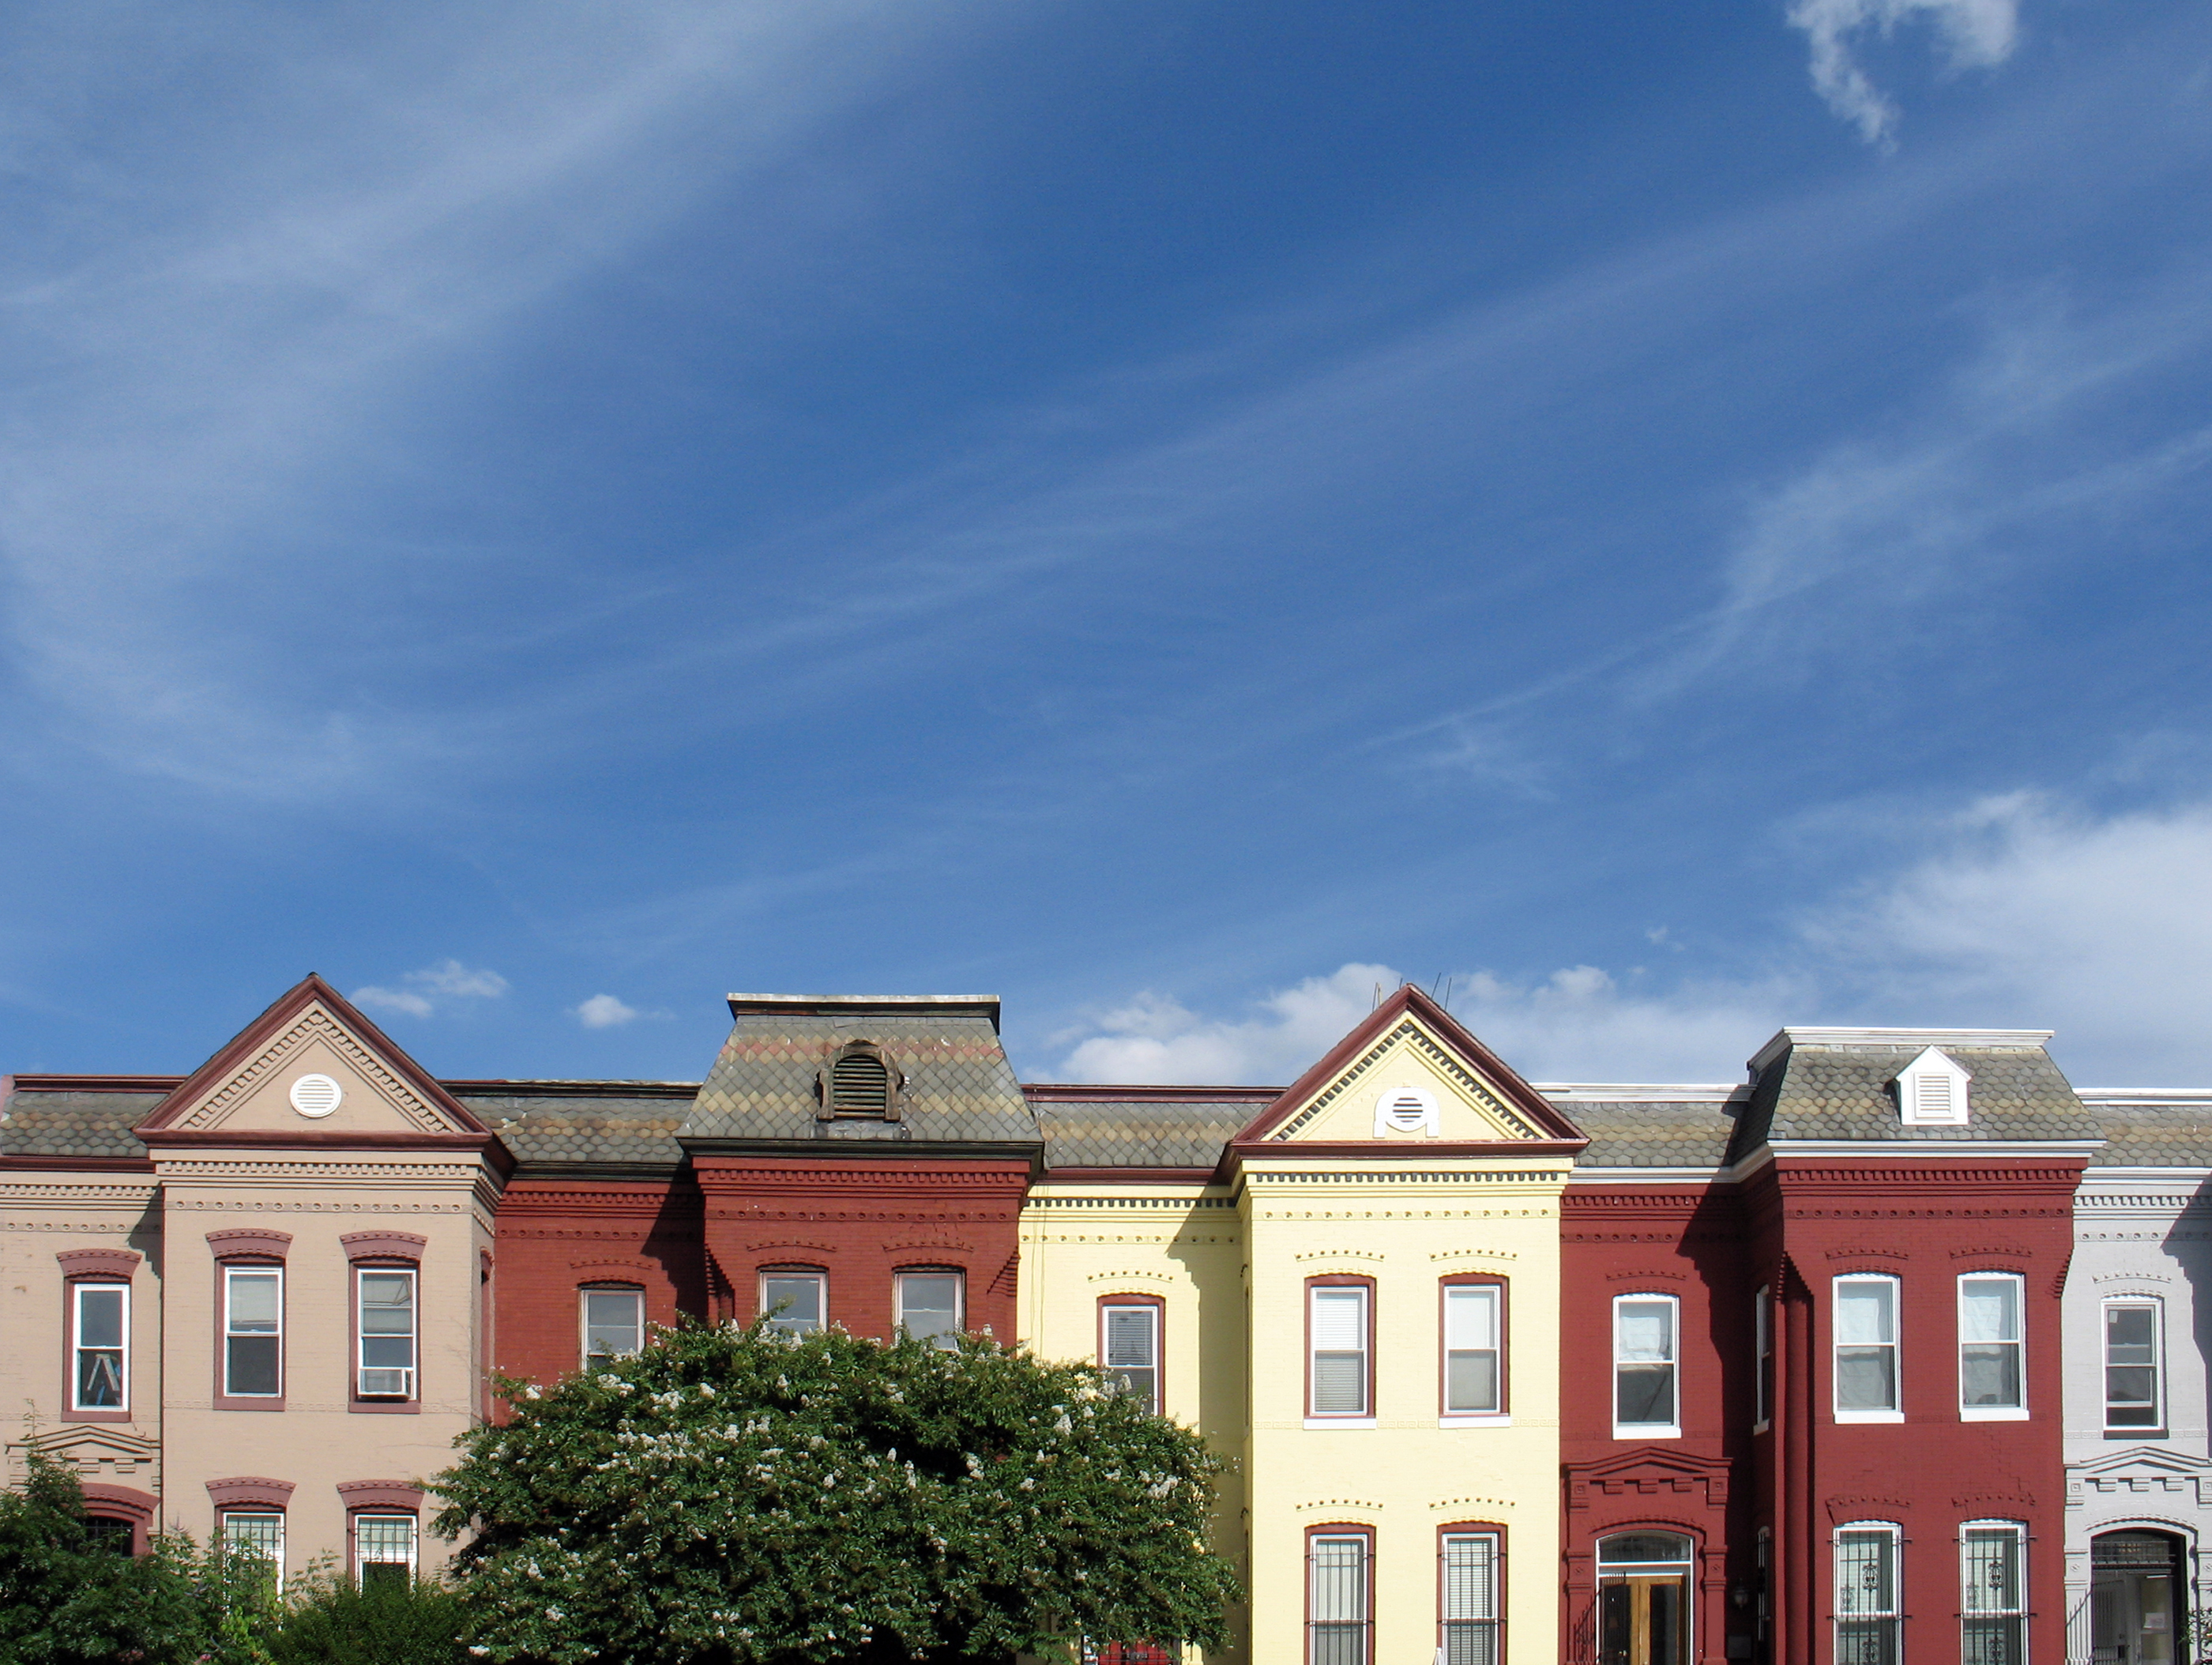 Several rowhouses of various colors in Washington, D.C., under blue skies.